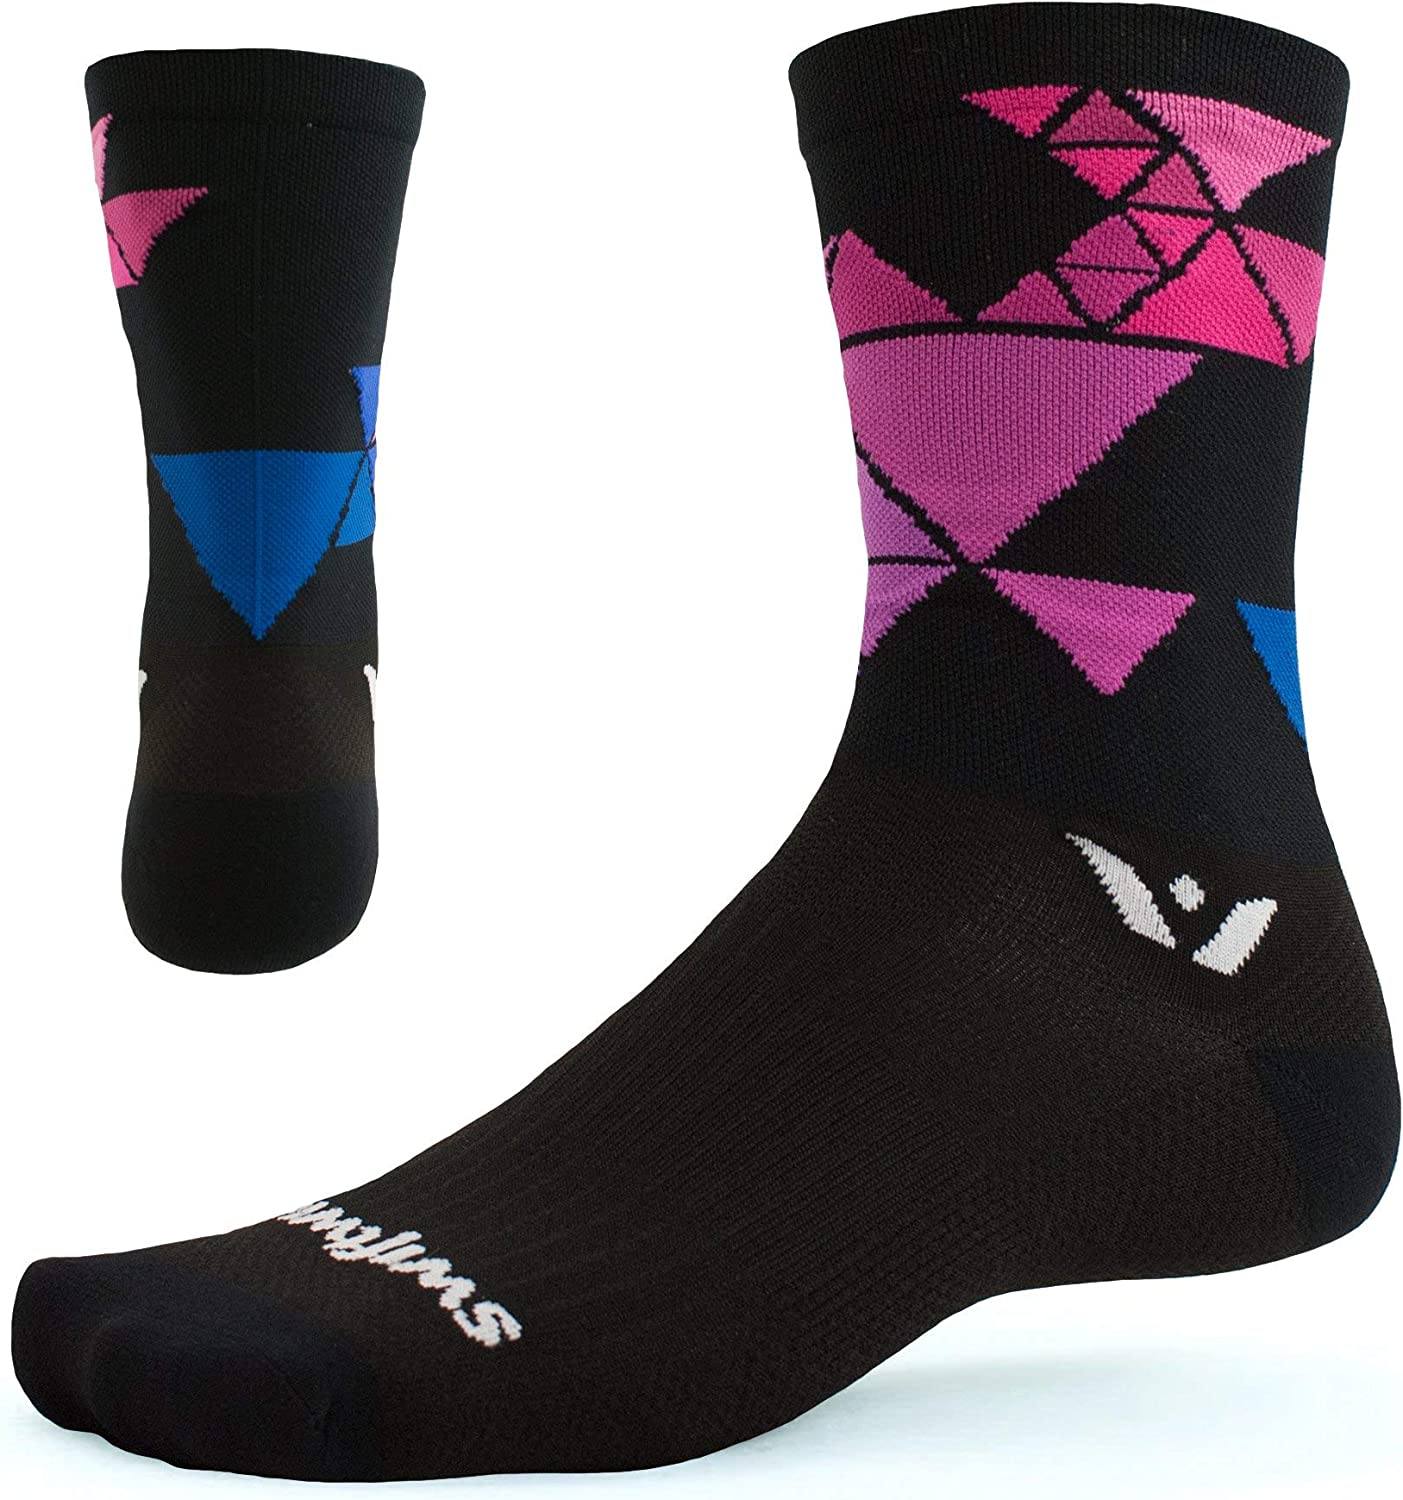 Swiftwick - VISION SIX Running & Cycling Socks, Durable Crew, Mens and Womens